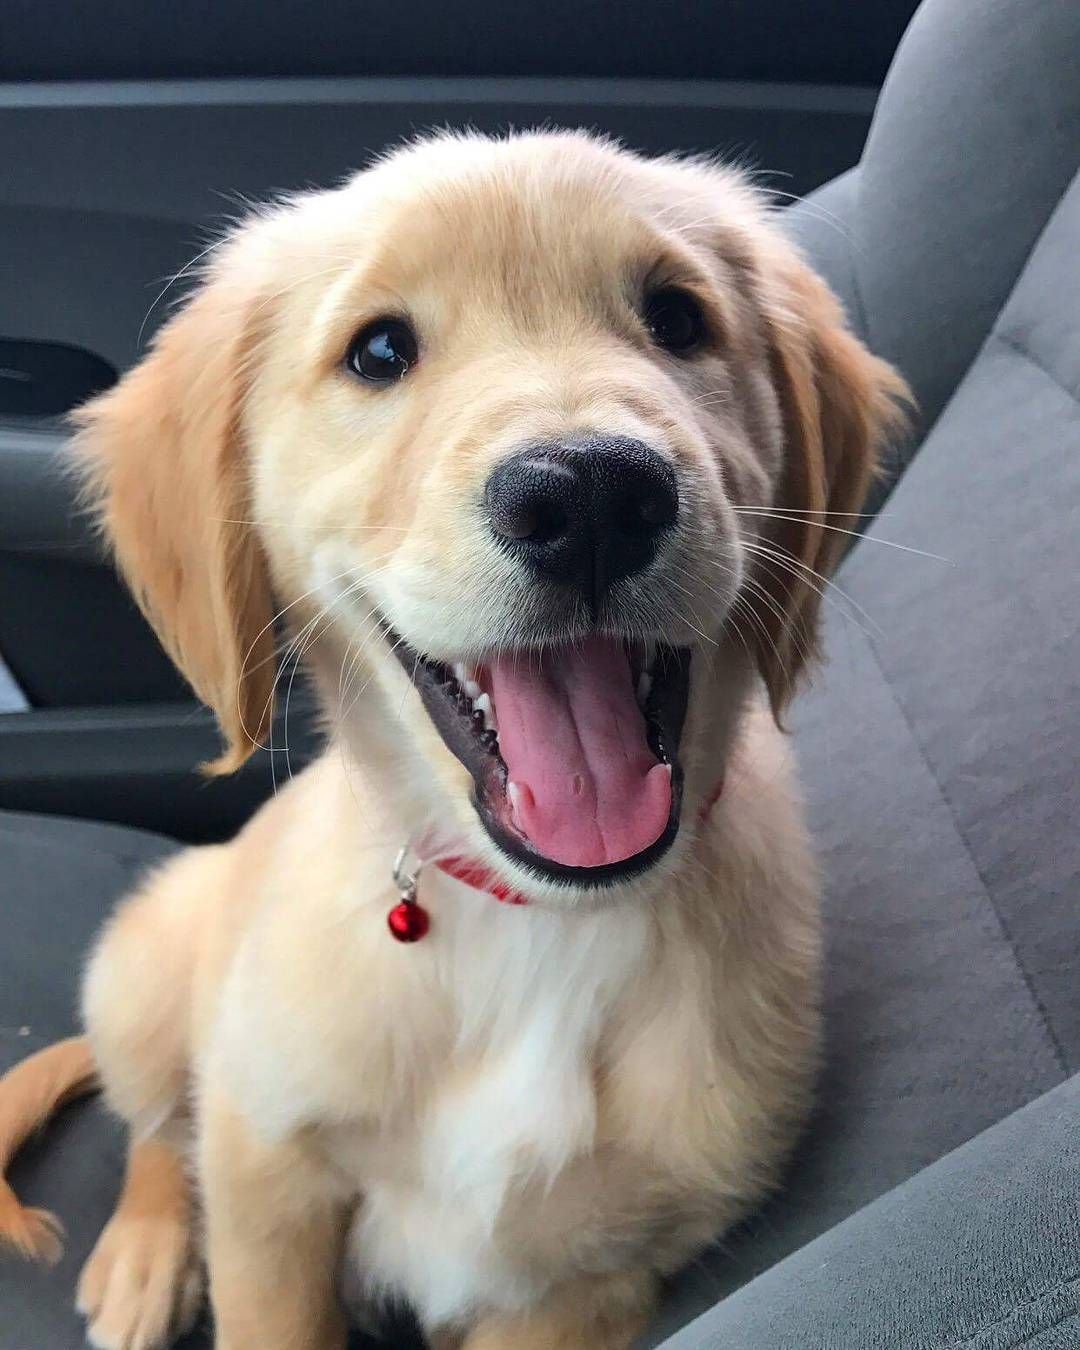 How Would You Like To Hold This Cute Golden Retriever Puppy Next